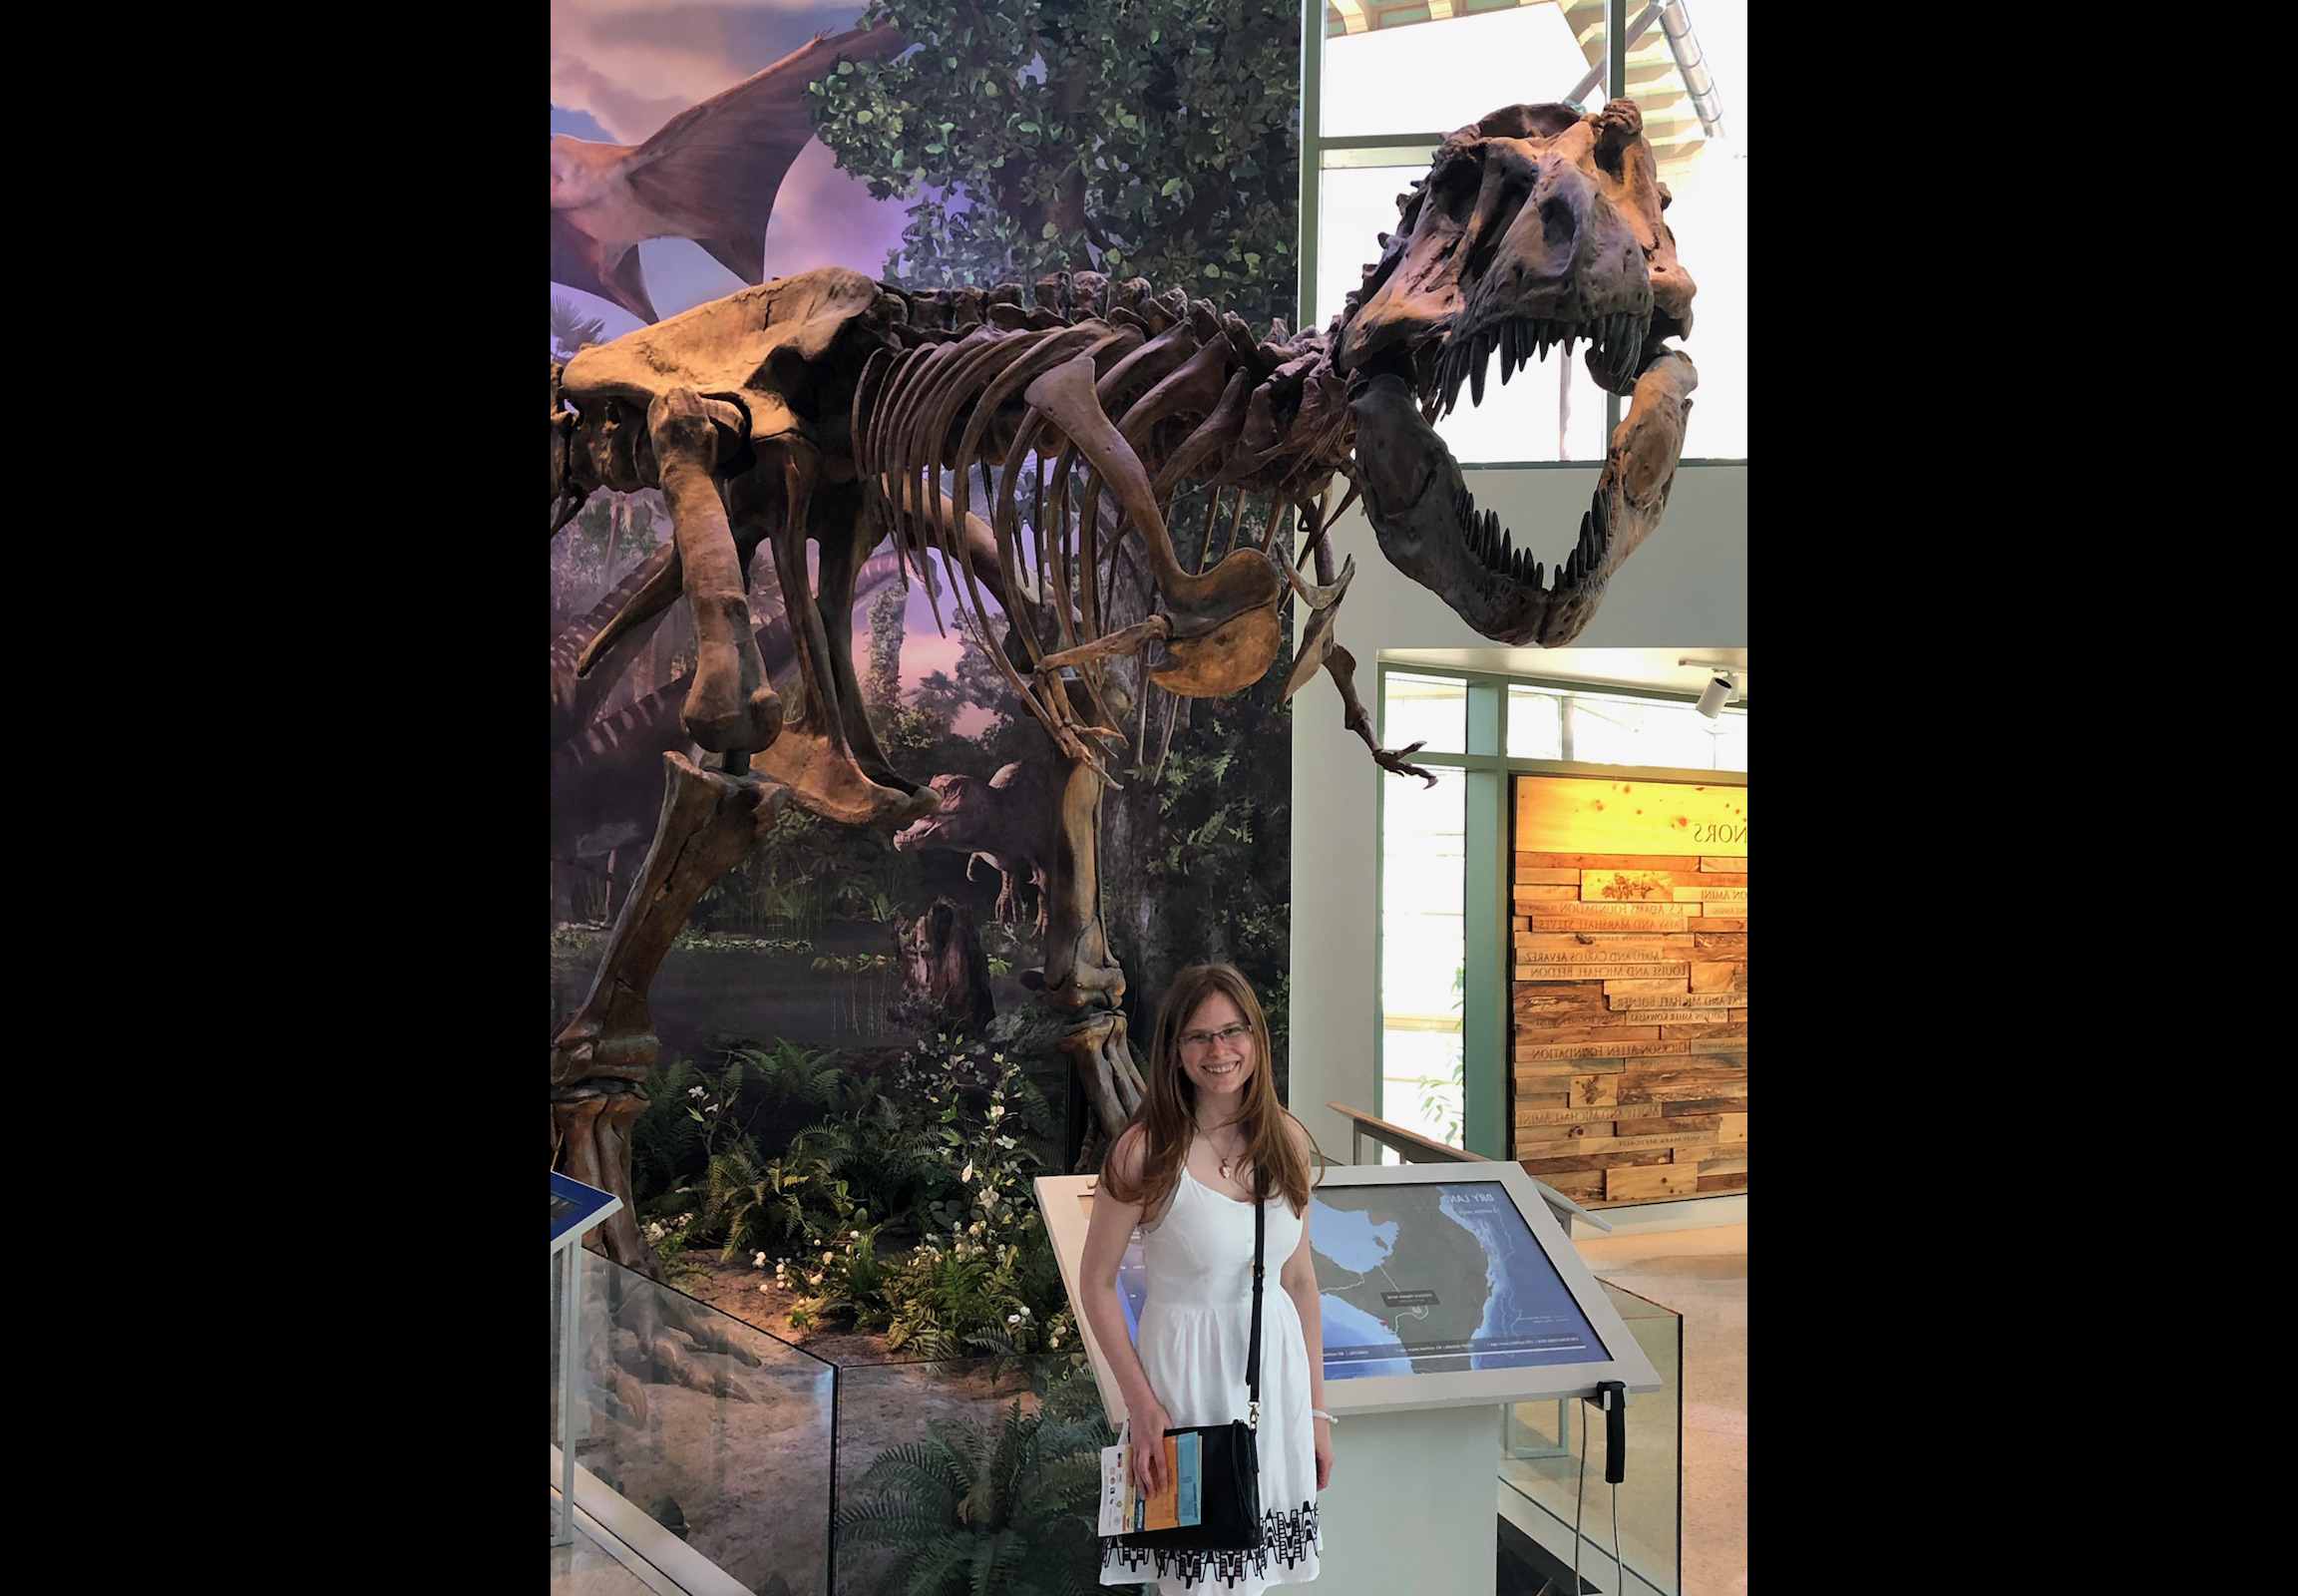 Nicole Moody poses before a T-Rex Skeleton